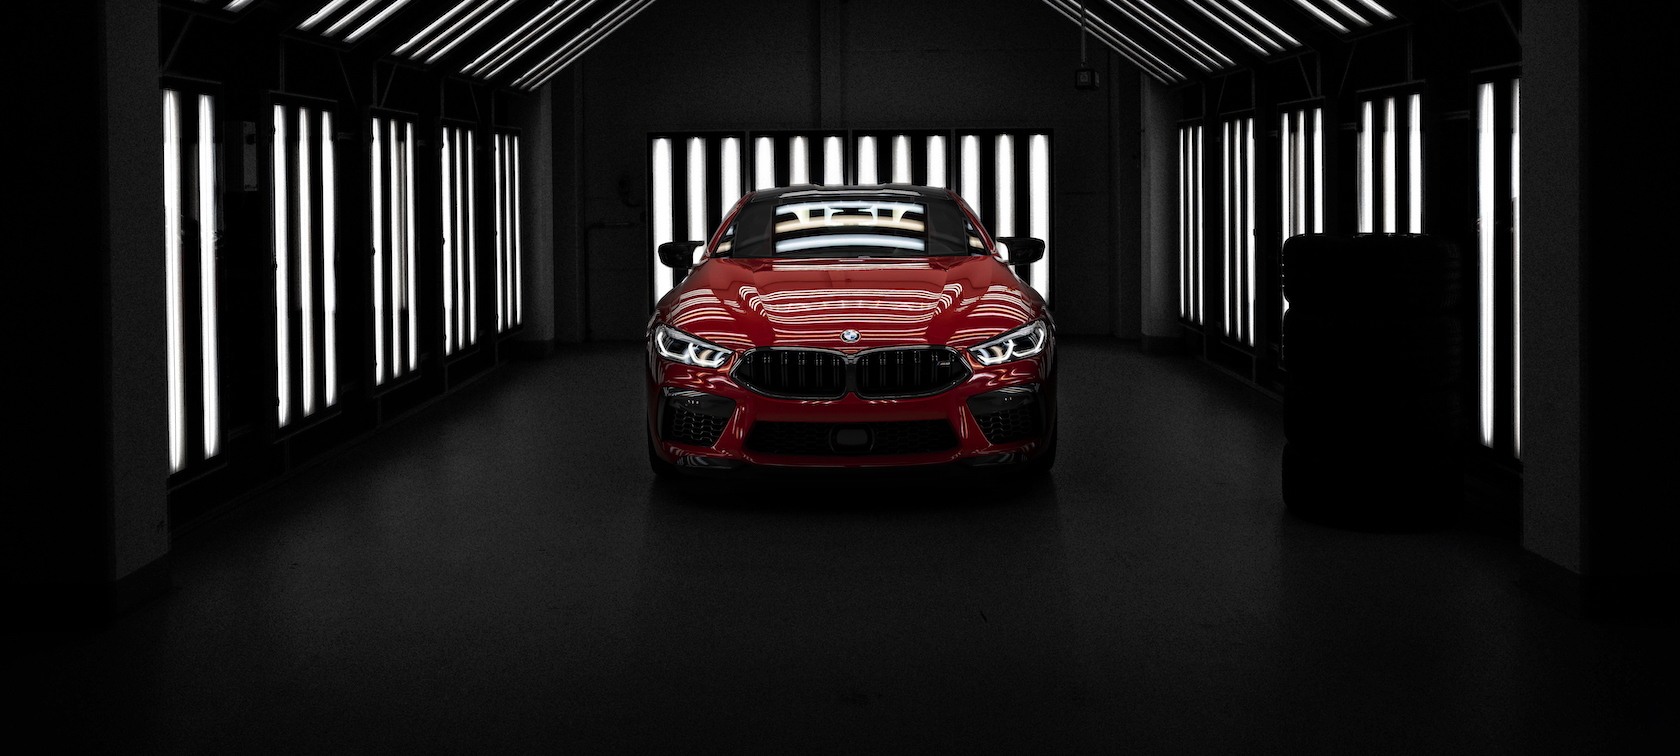 The M8 Limited Edition vehicle surrounded by lights